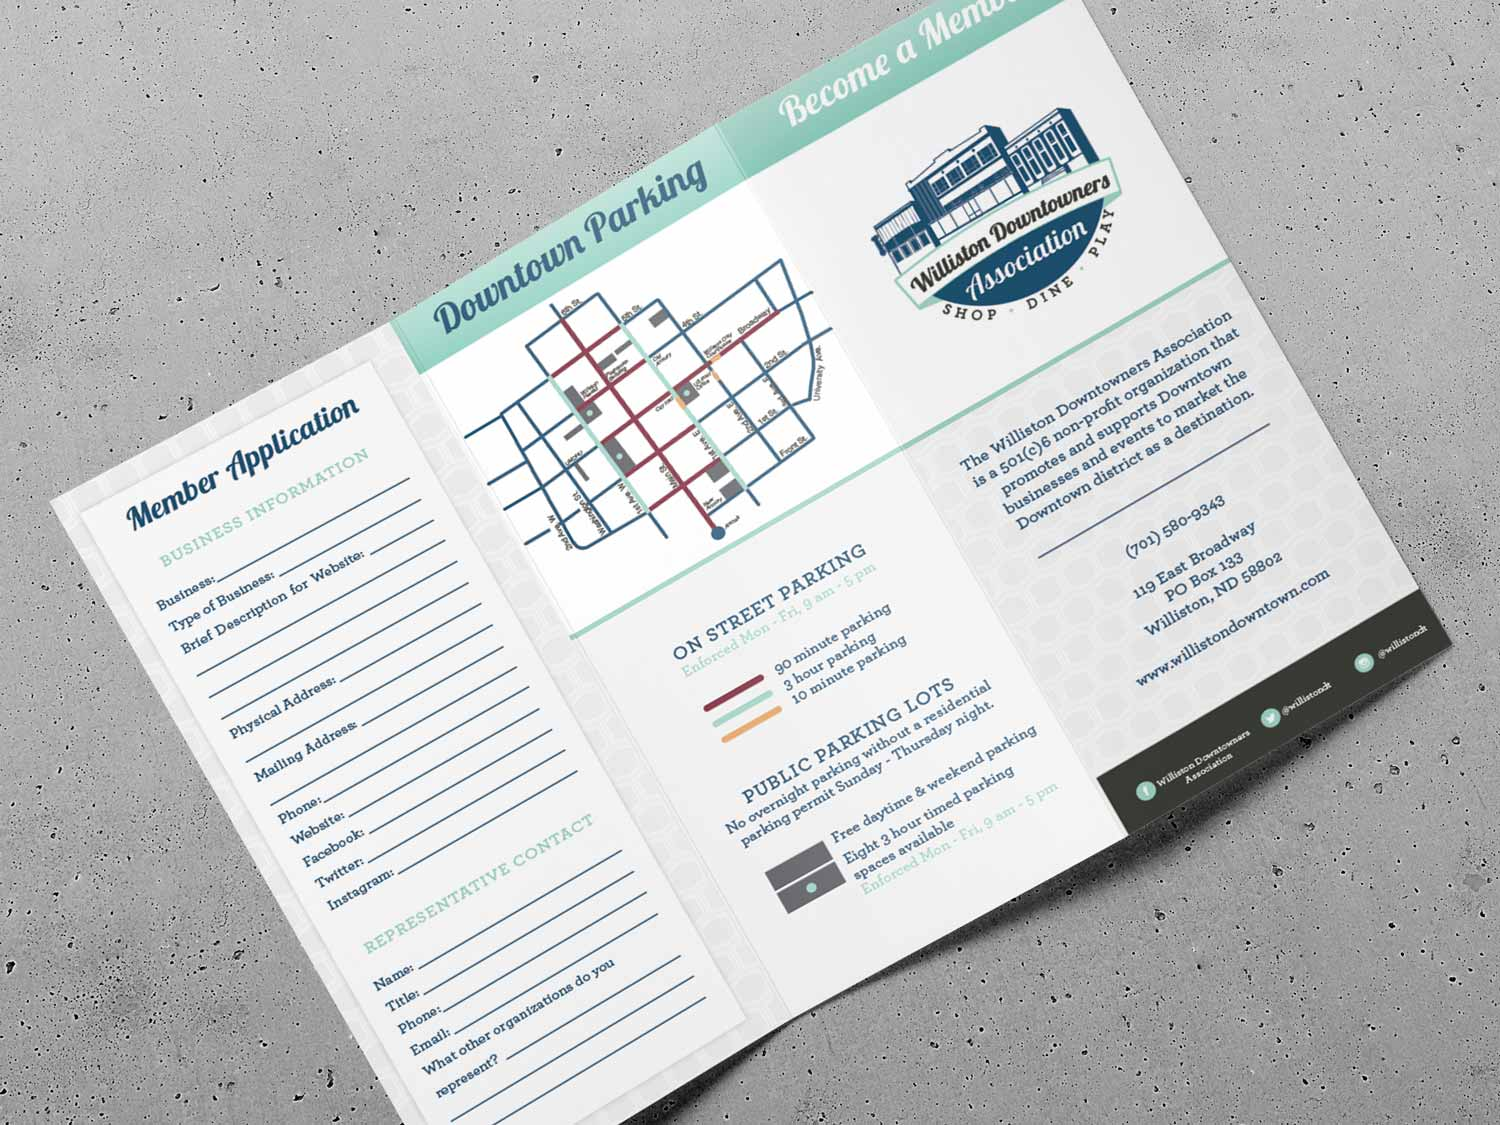 Logo, brand identity, trifold brochure and website design for Williston Downtowners Association